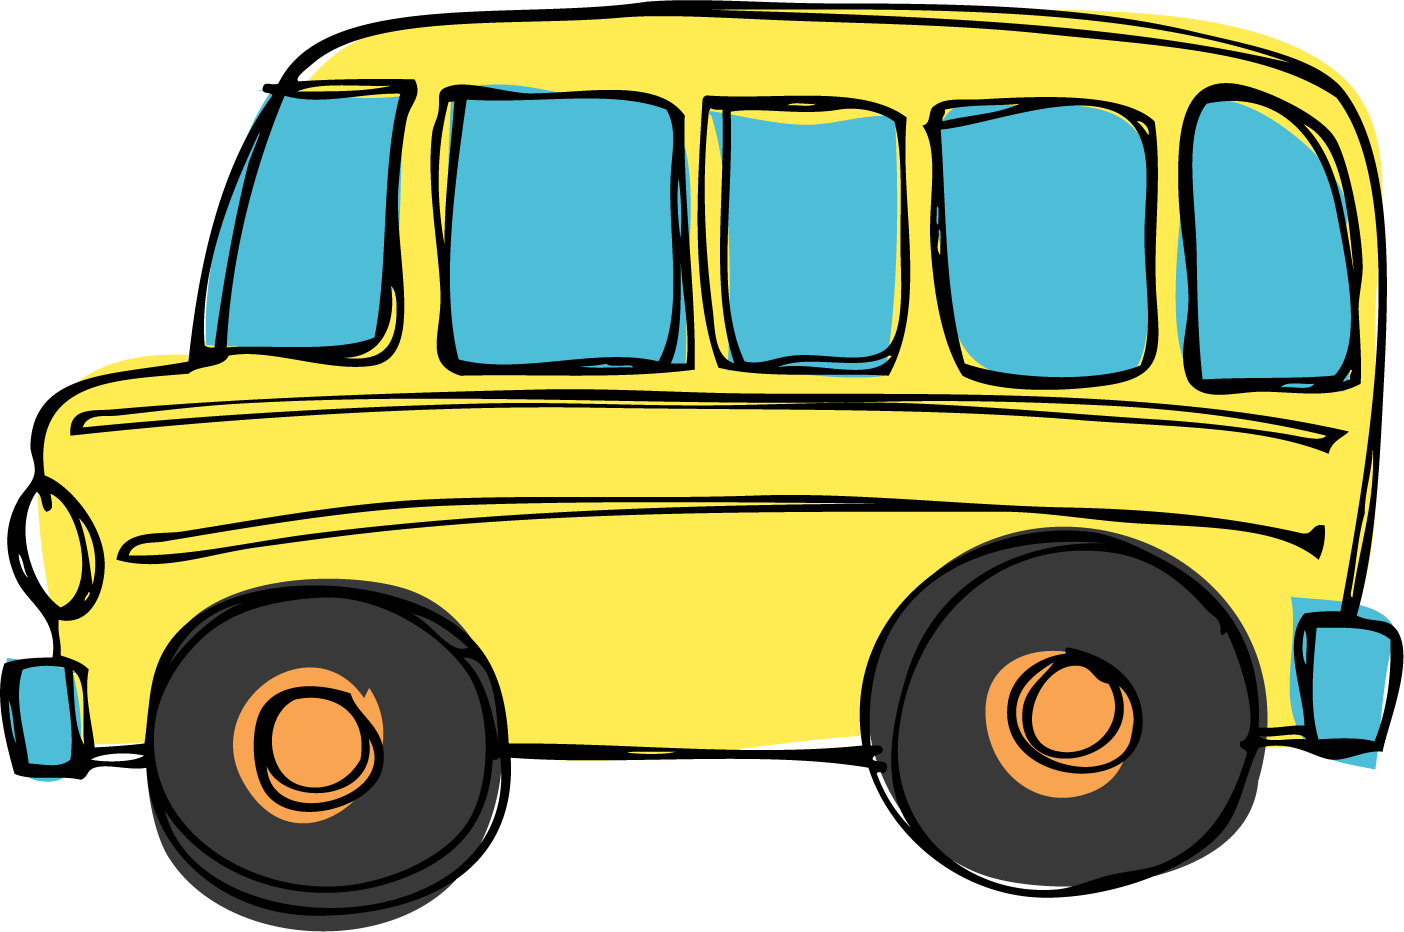 Bus drawing png. Collection of school